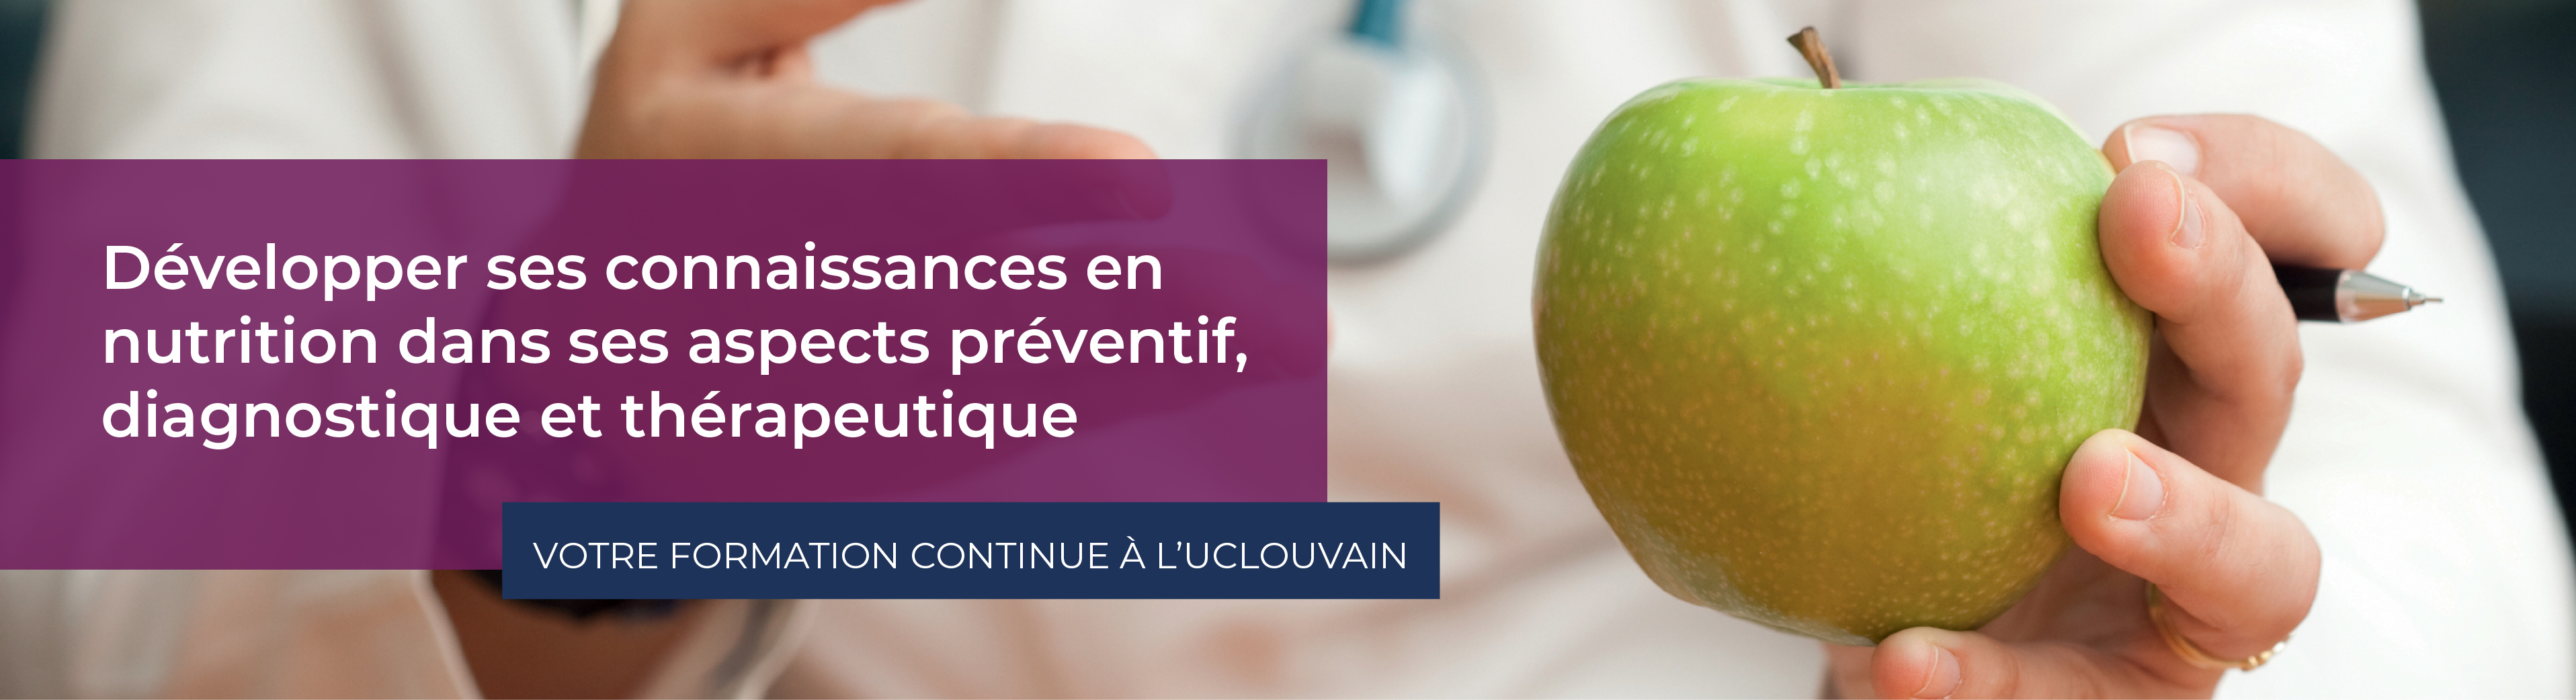 NutritionClinique_Header_Homepage.jpg